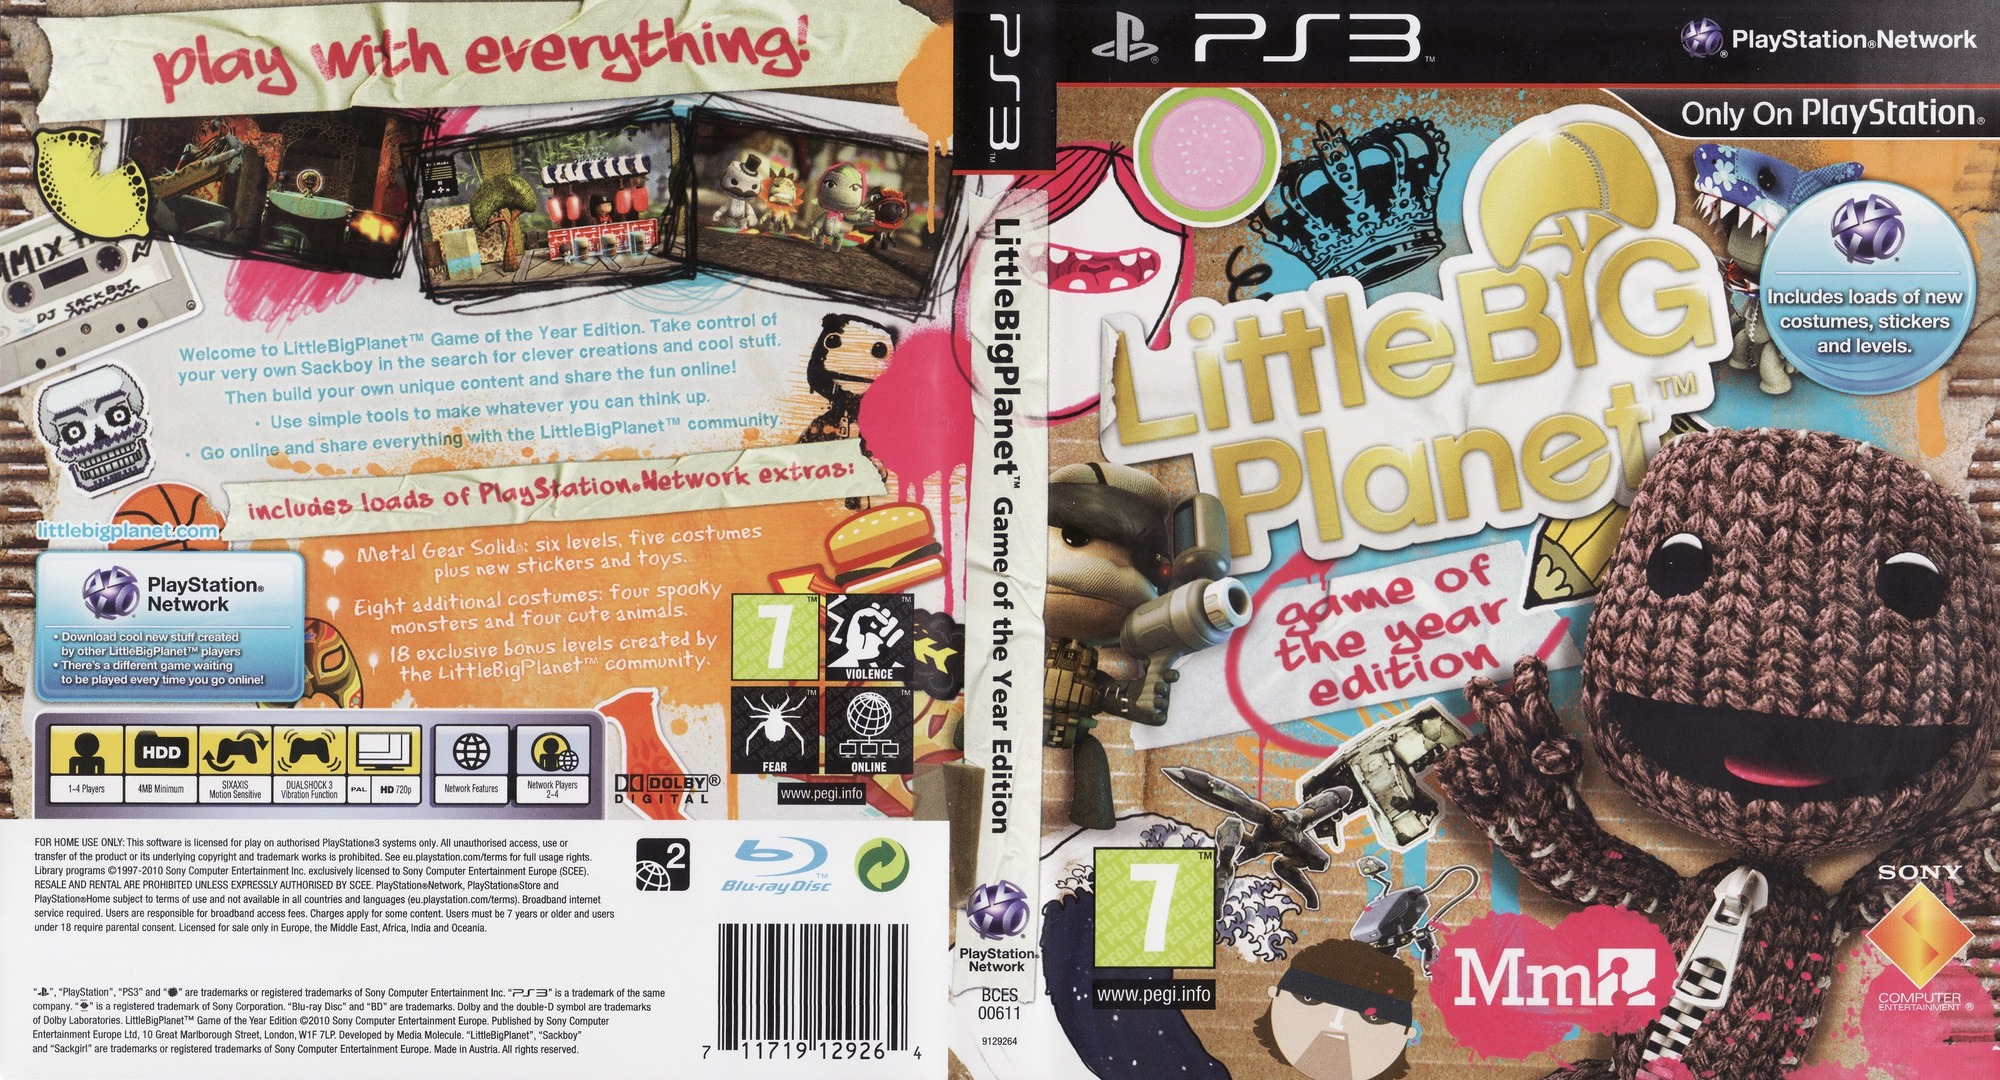 LittleBigPlanet (Game of the Year Edition) PS3 coverfullHQ (BCES00611)